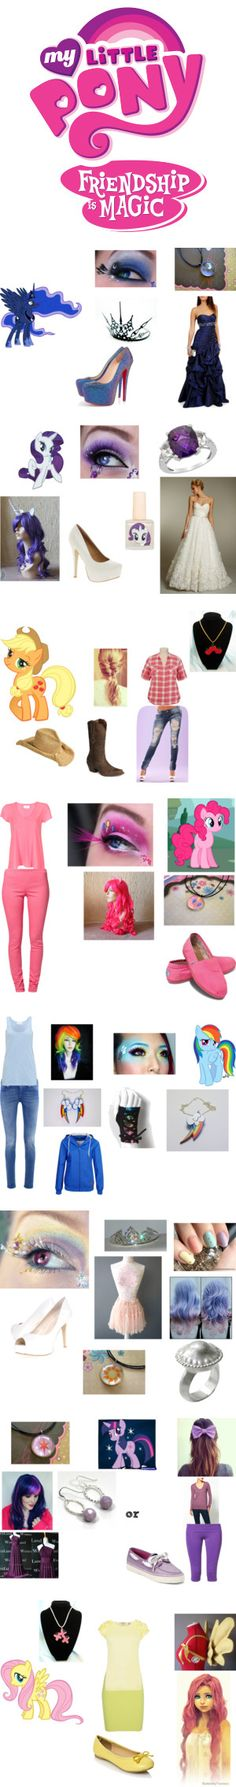 """""""my little pony friendship is magic"""" by clarestuber ❤ liked on Polyvore"""